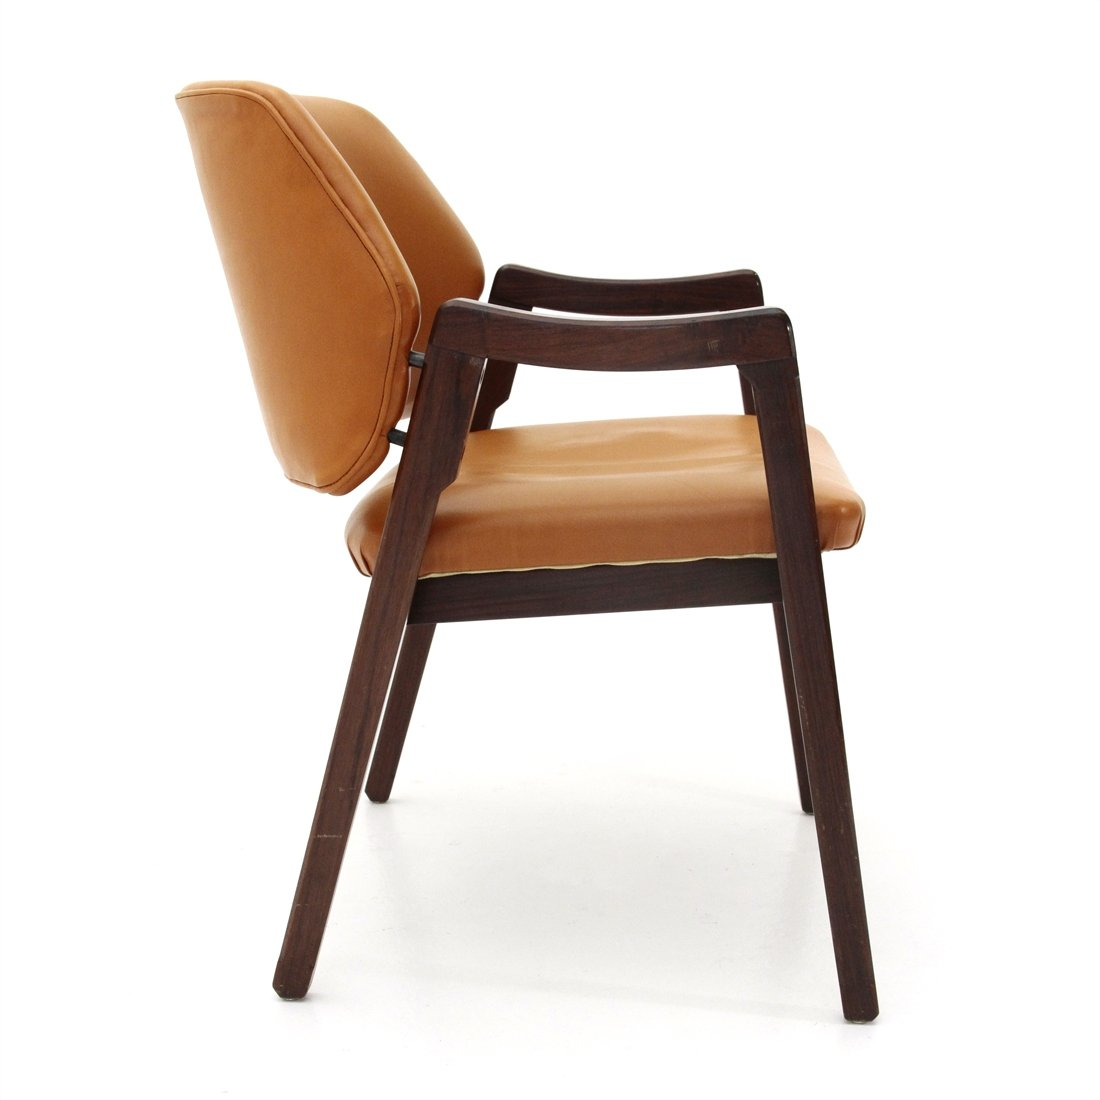 Picture of: Midcentury Brown Leather Chair By Ico Parisi For Cassina 1960 S 118297